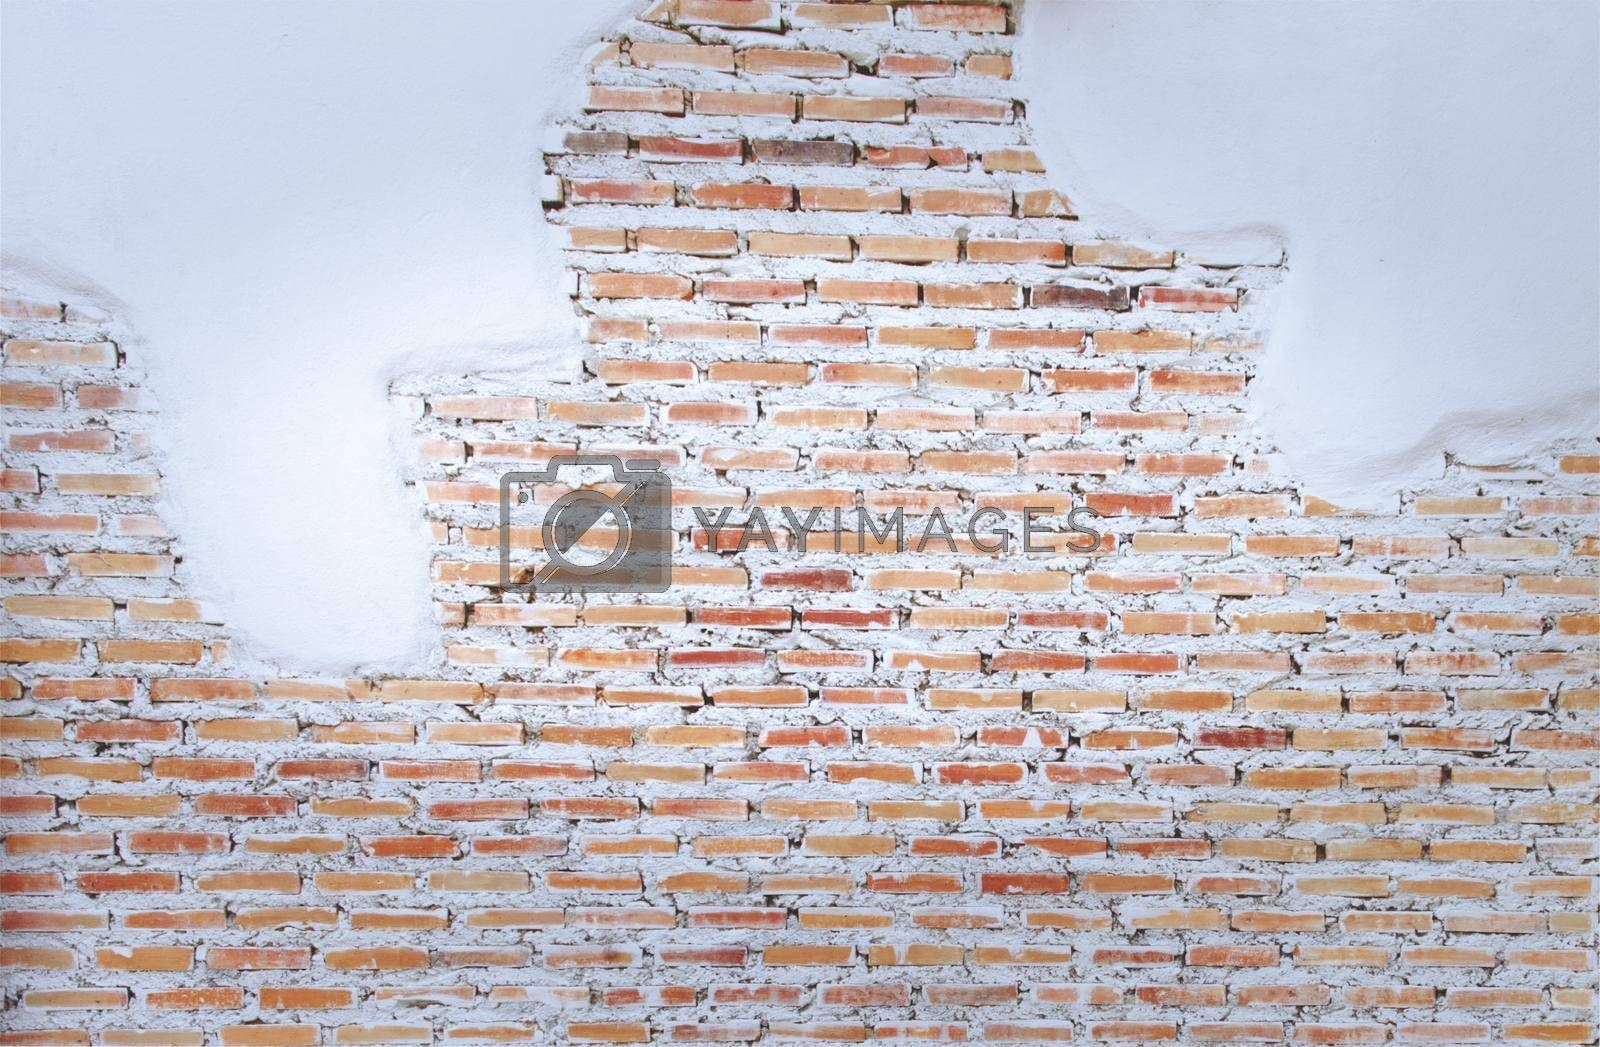 Empty old brick wall painted texture happy red-brown wall wide grunge brick wall shabby building with damaged plaster abstract web banner copy space.